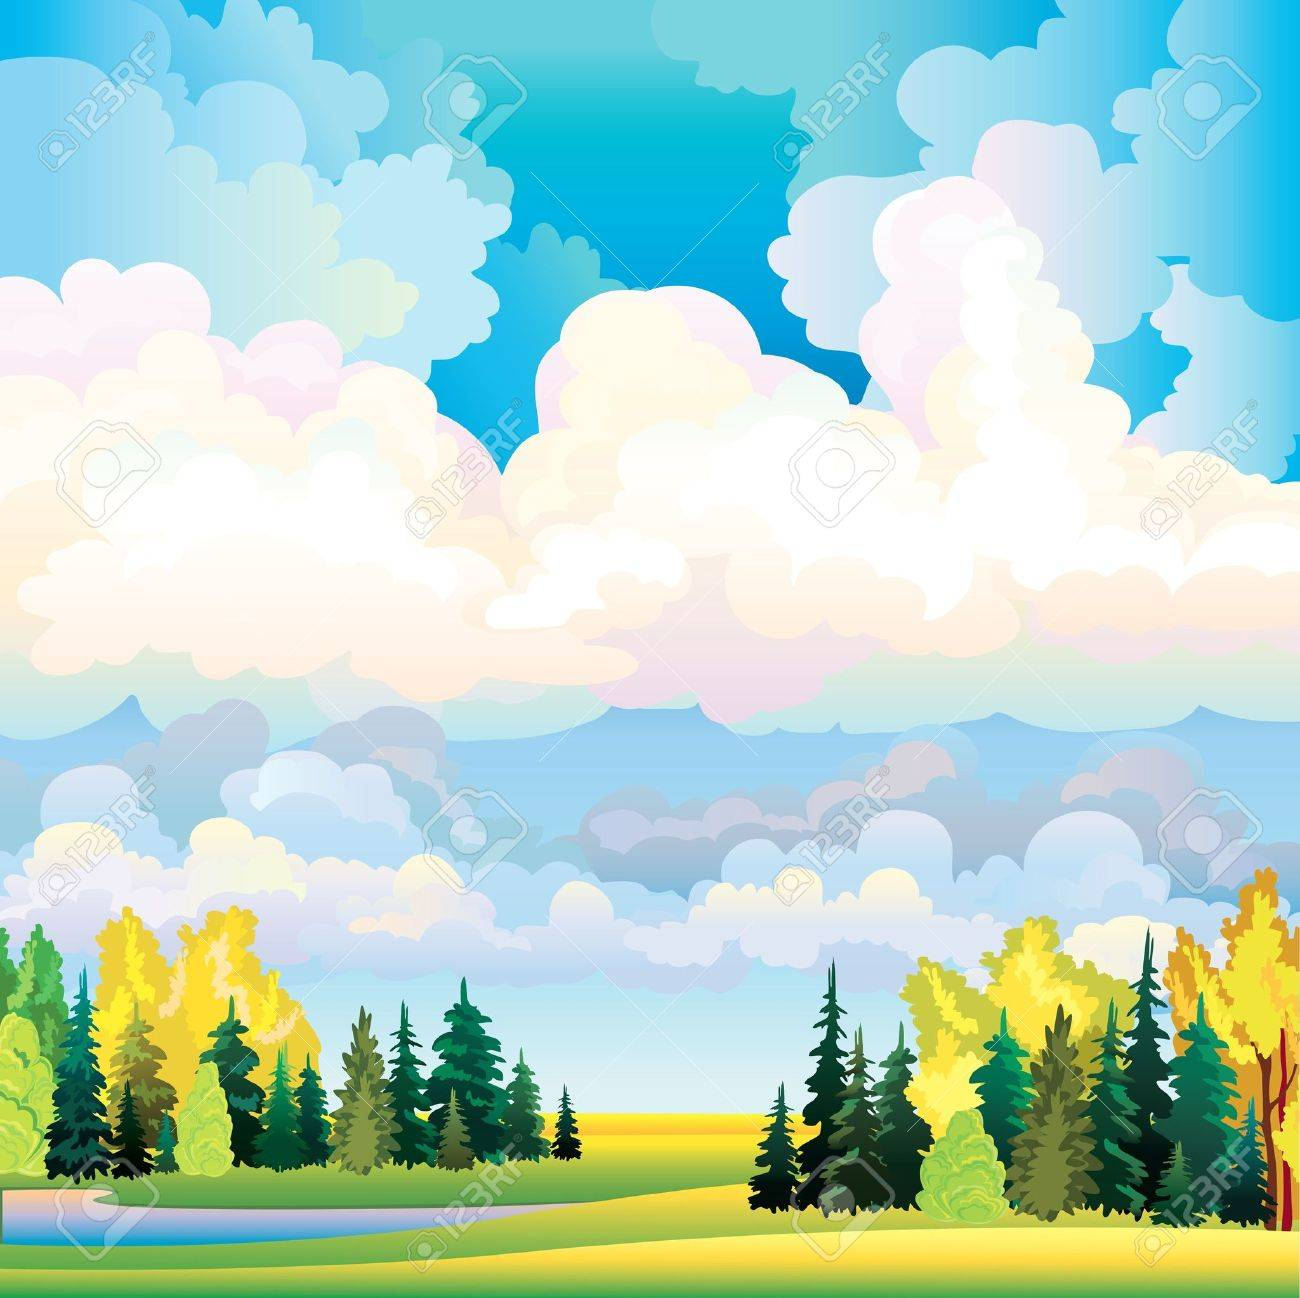 Autumn landscape with group of clouds on a blue sky, lake, yellow trees and green meadow Stock Vector - 16687608